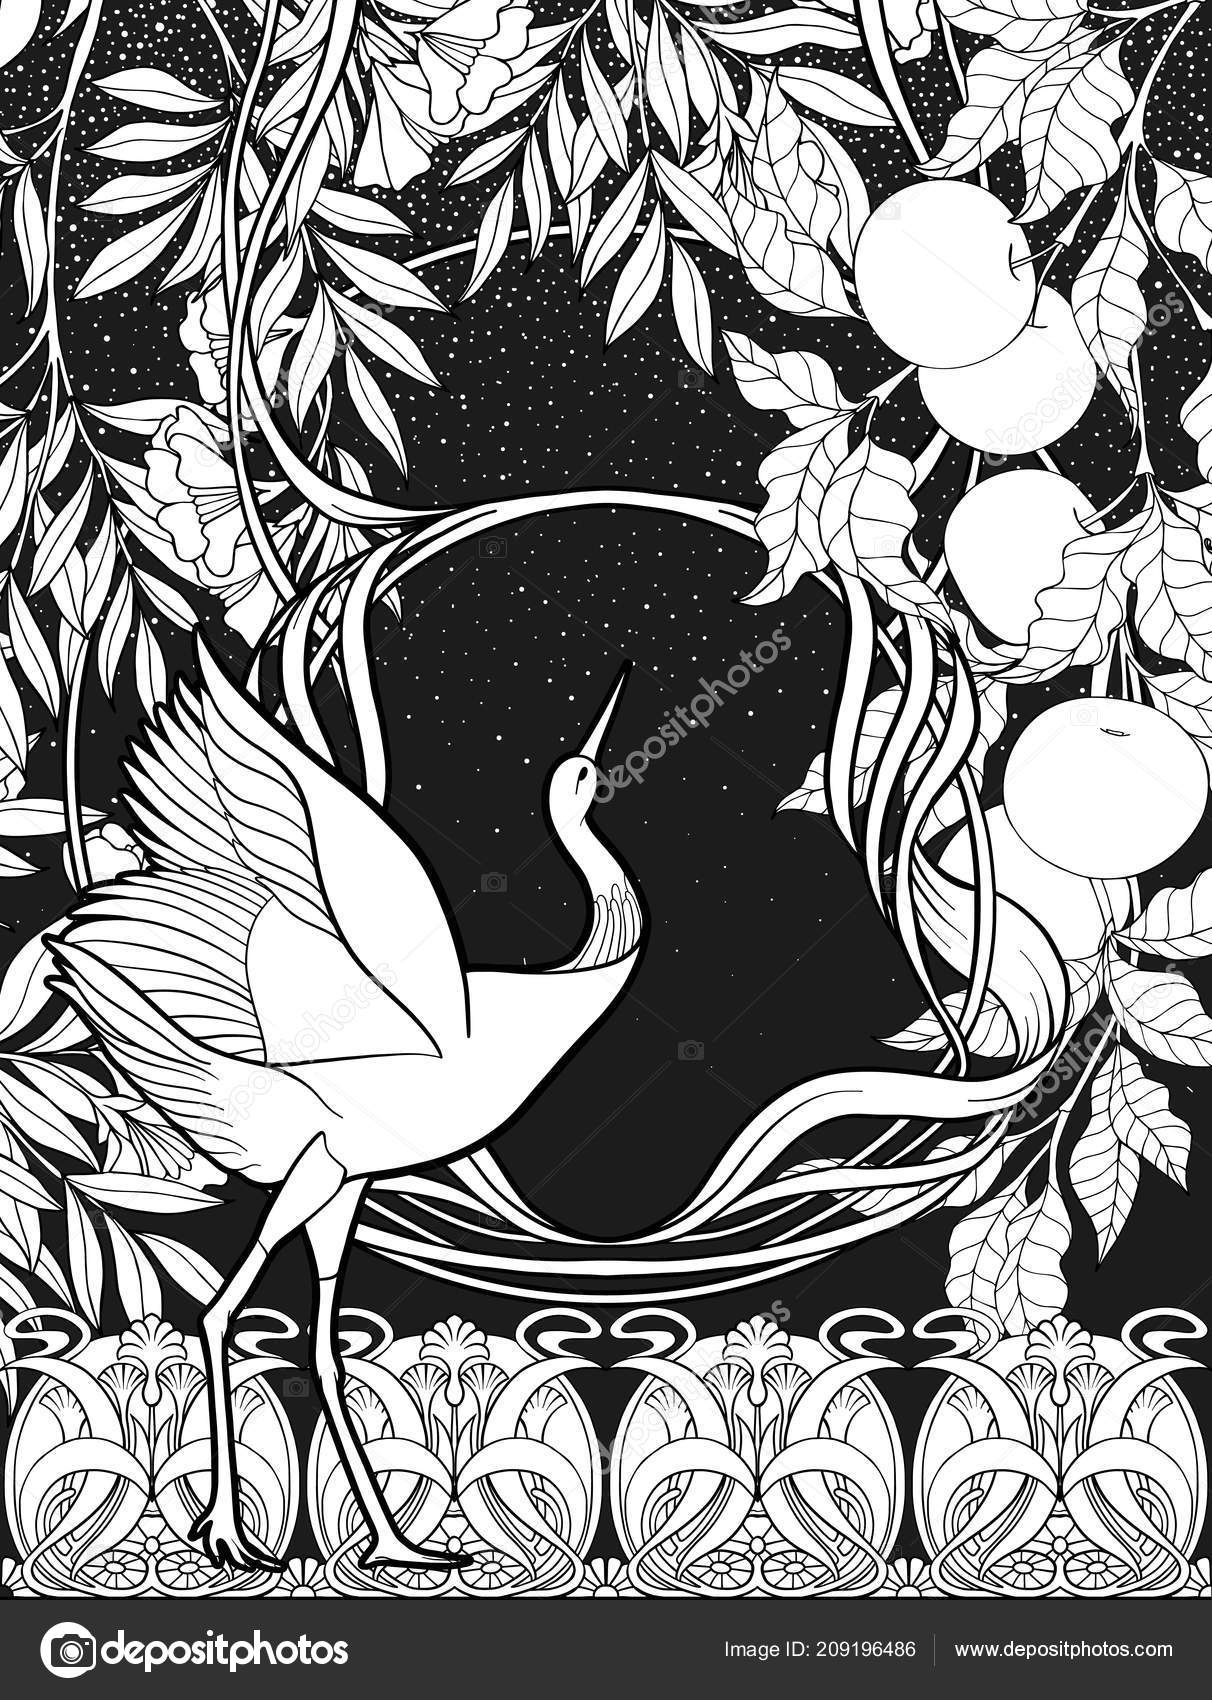 Poster background with decorative flowers and bird in art nouveau style black and white graphics vector illustration